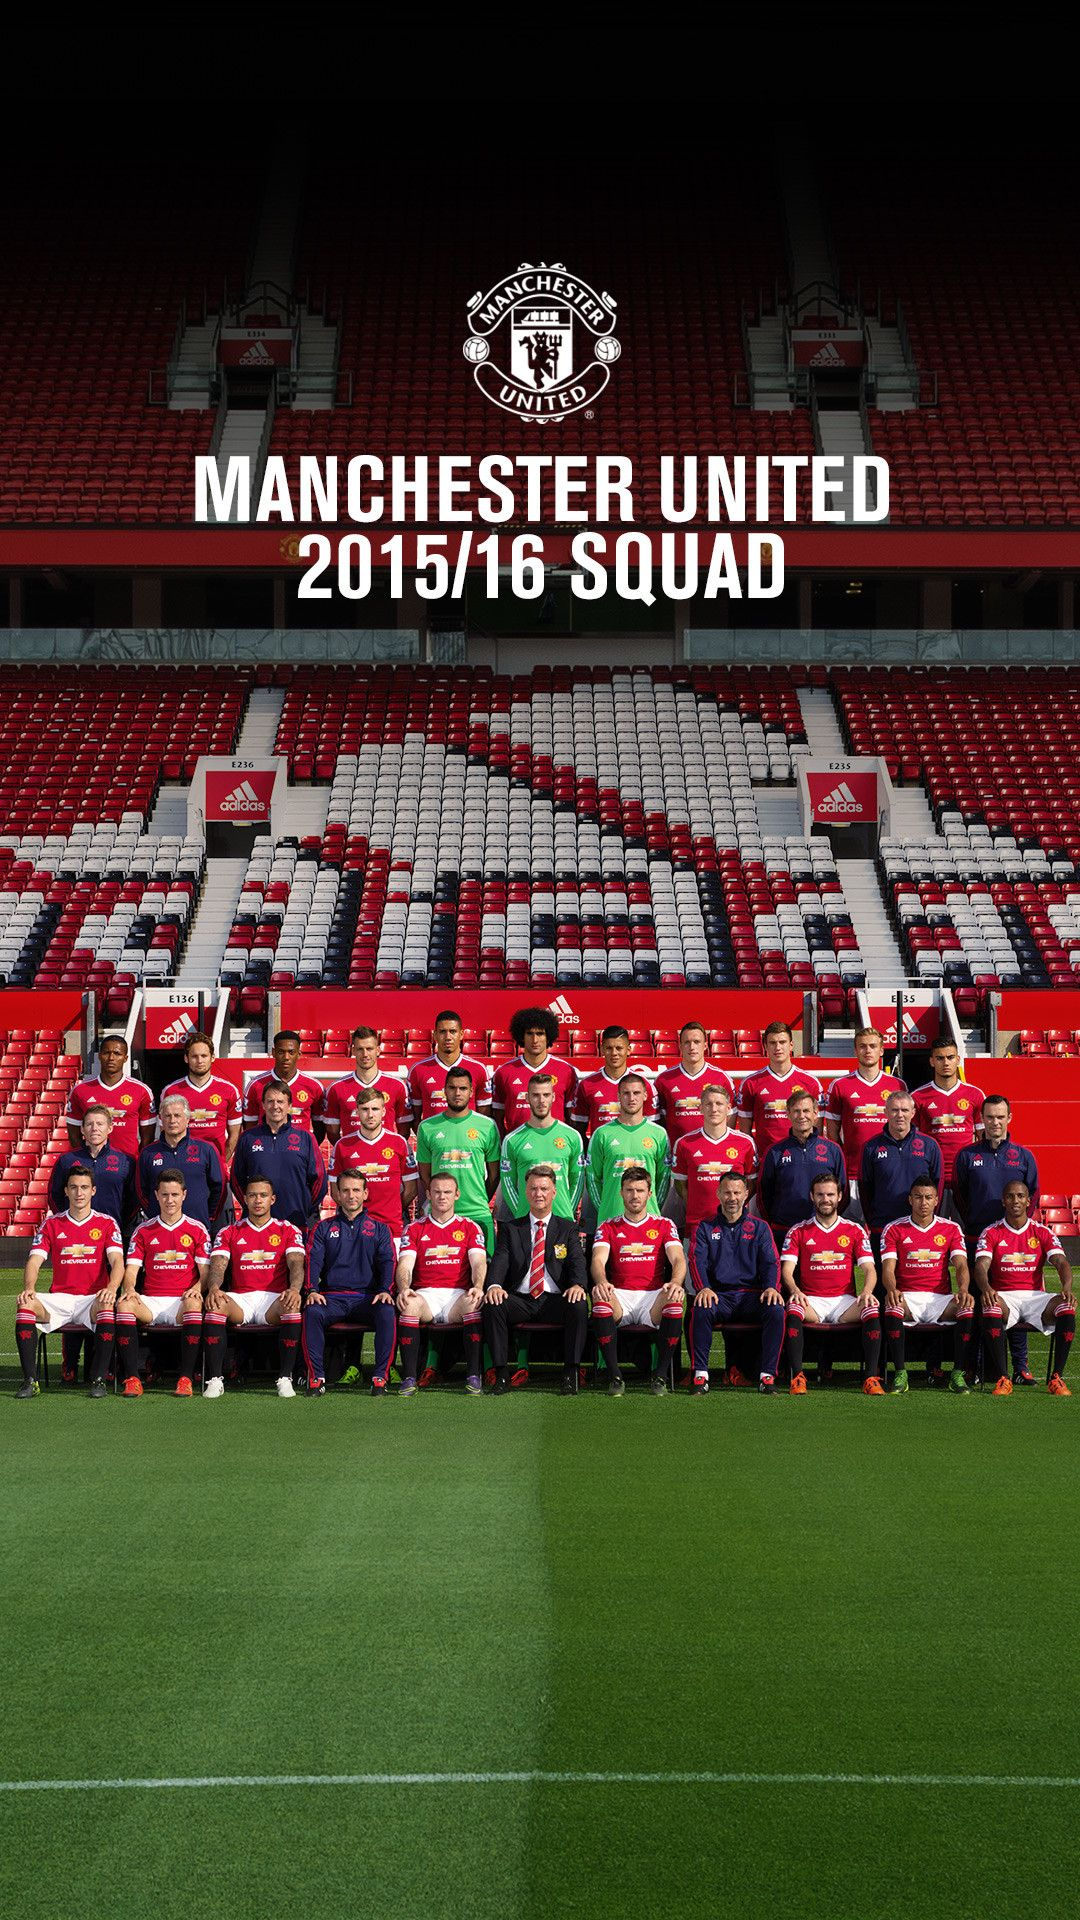 Get Latest Manchester United Wallpapers IPhone 1080x1920 Manchester United Fc Wallpapers iPhone 6 Plus. iPhone 6 · iPhone 6 PLUS